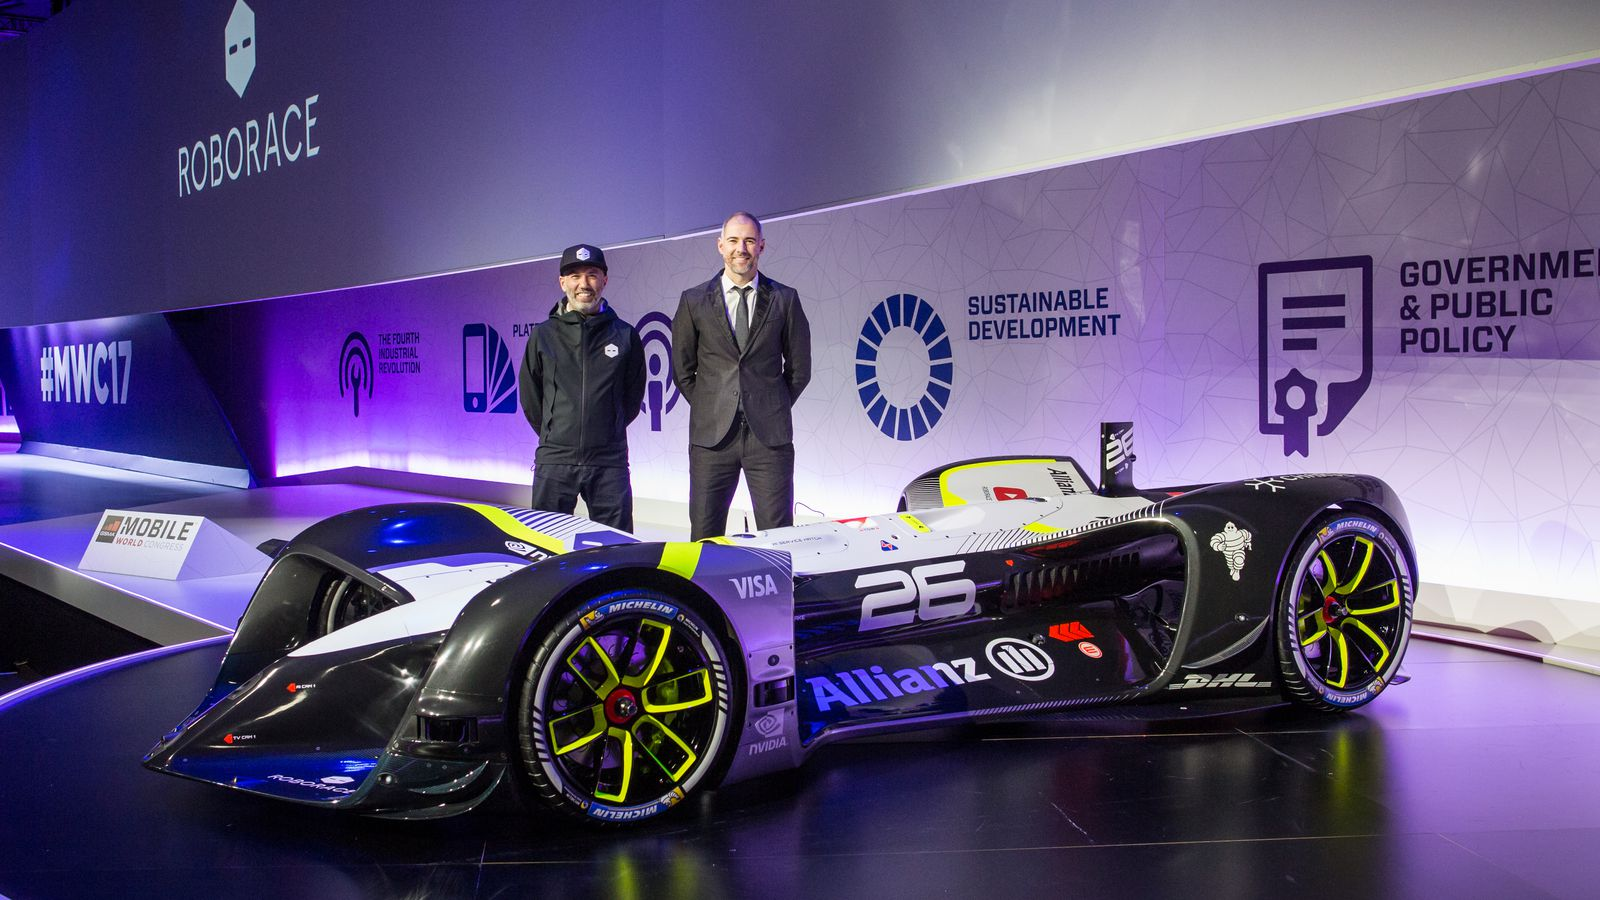 roborace finally reveals its self driving racecar the verge